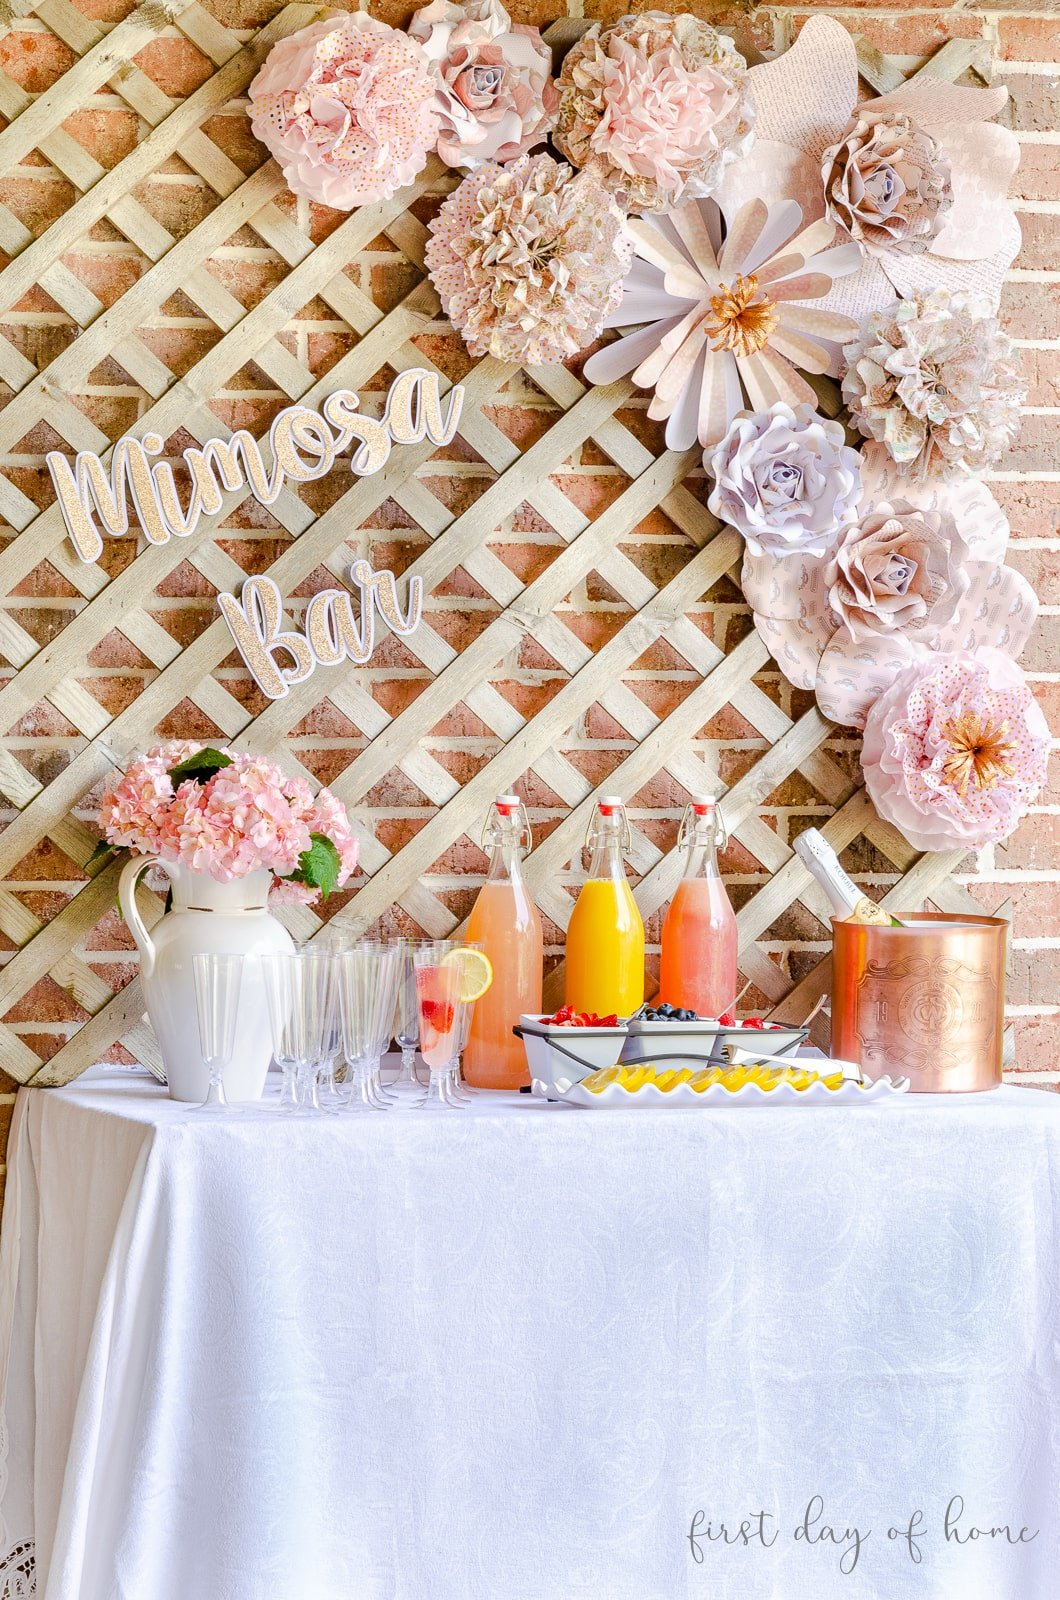 Mimosa bar decor including paper flowers and DIY tissue paper pom poms